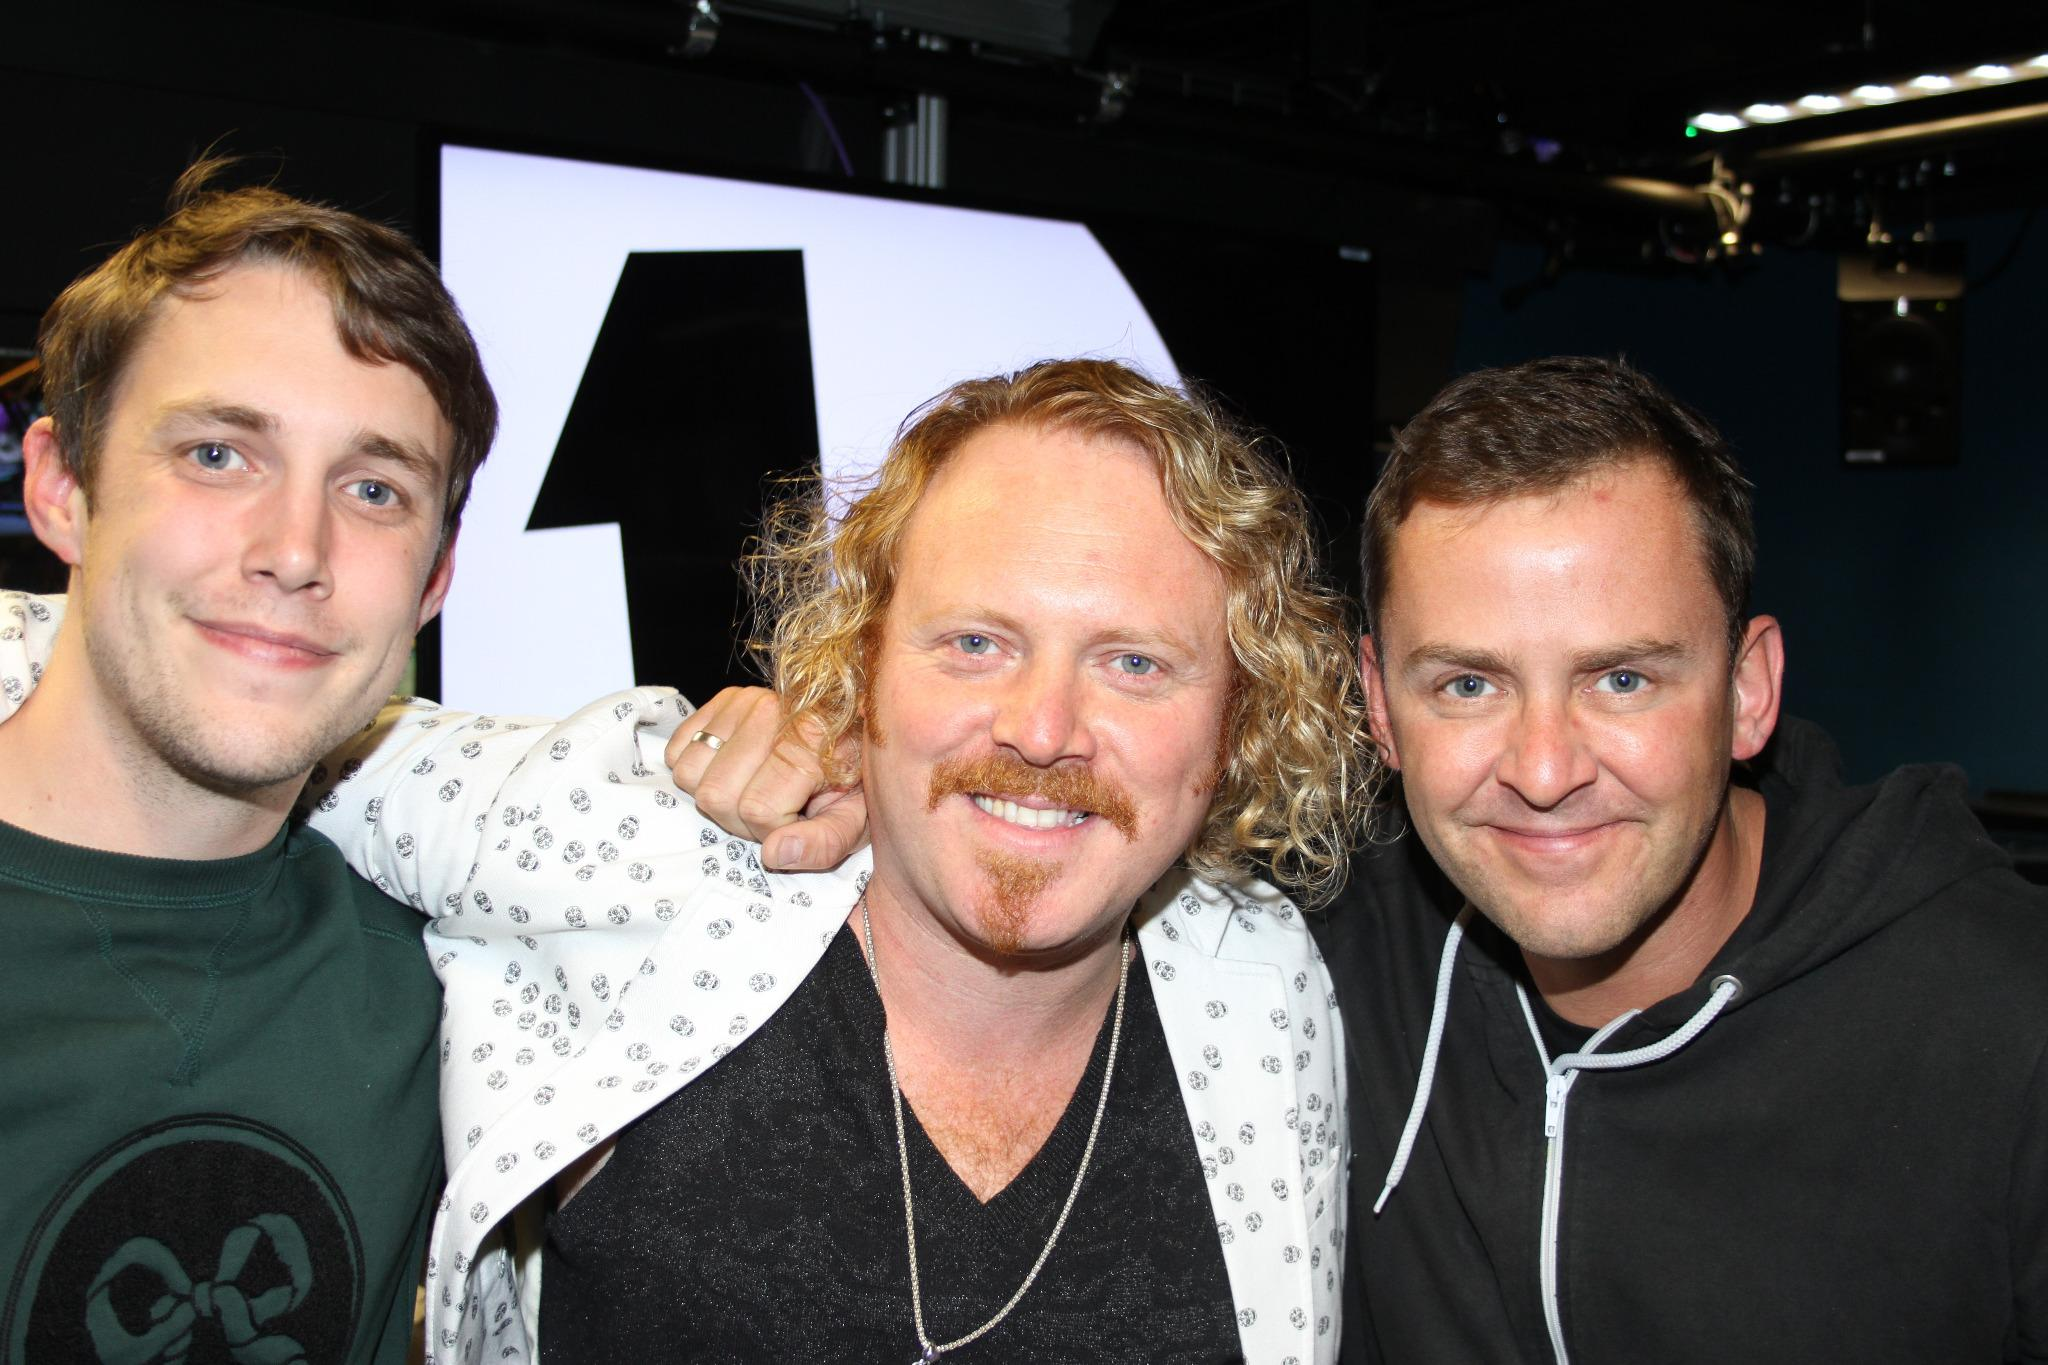 RT @BBCR1: Brace yourself - more from @lemontwittor next... http://t.co/xaOCliCE68